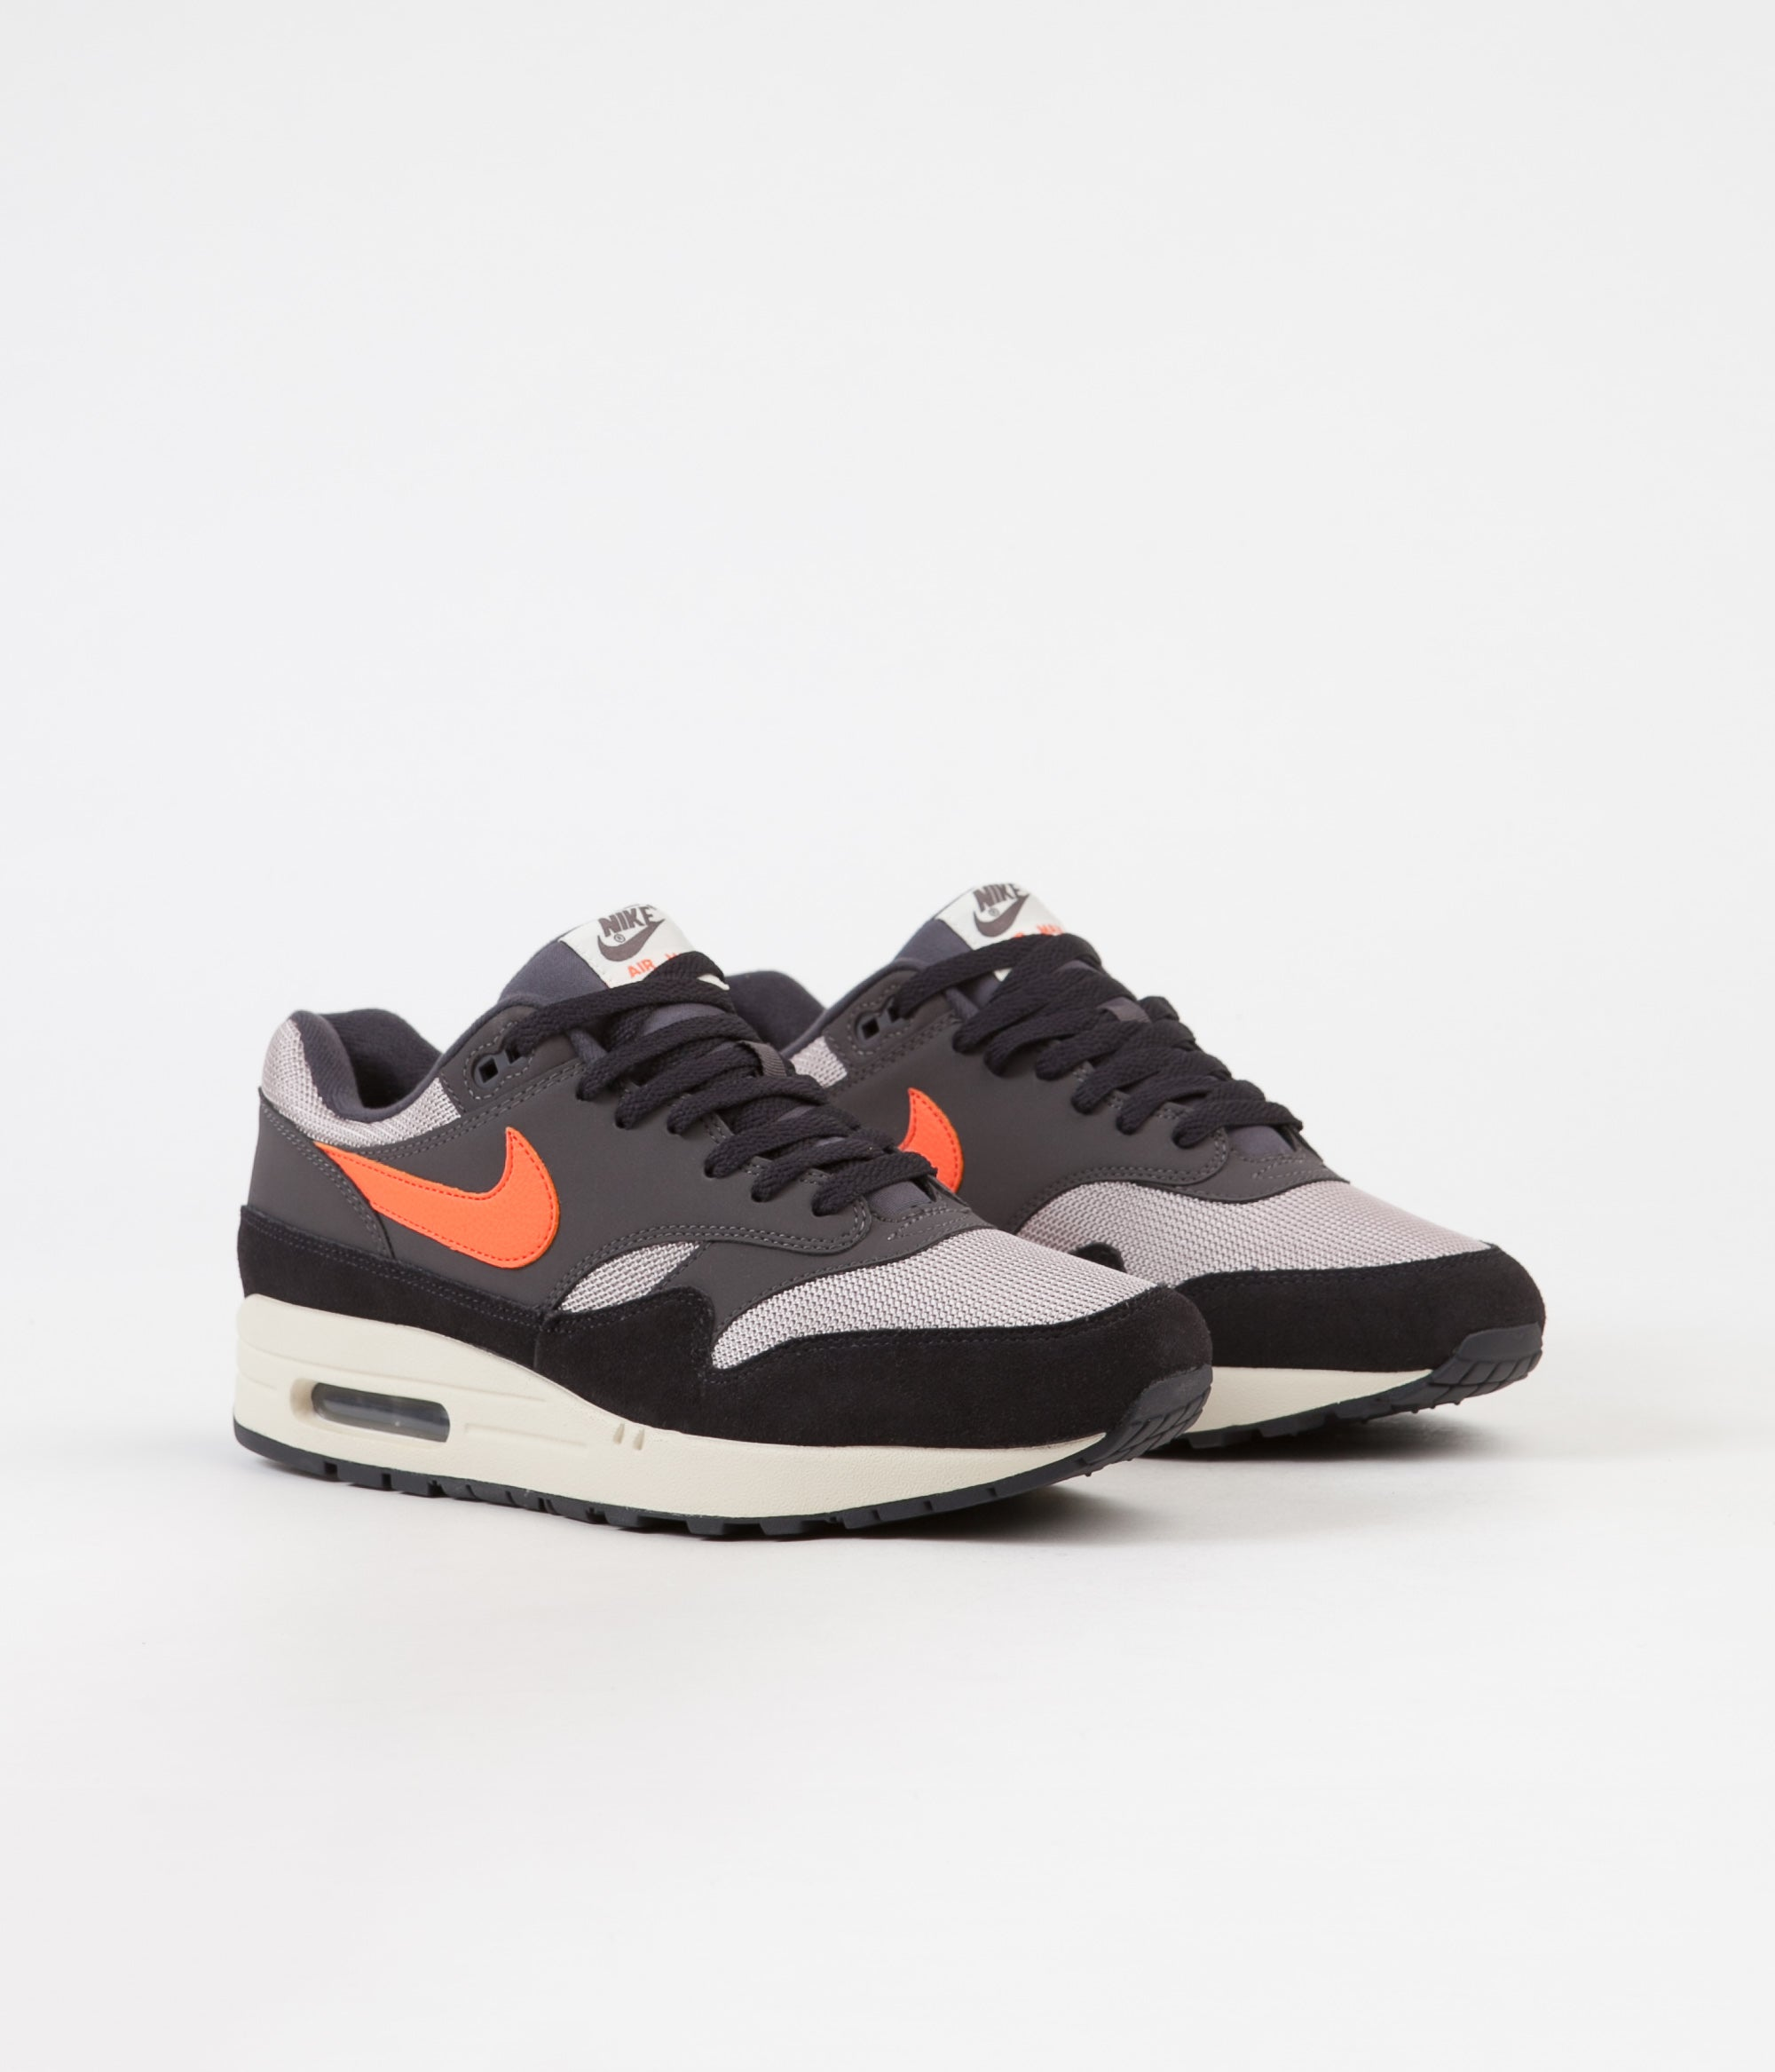 air max 1 thunder grey orange